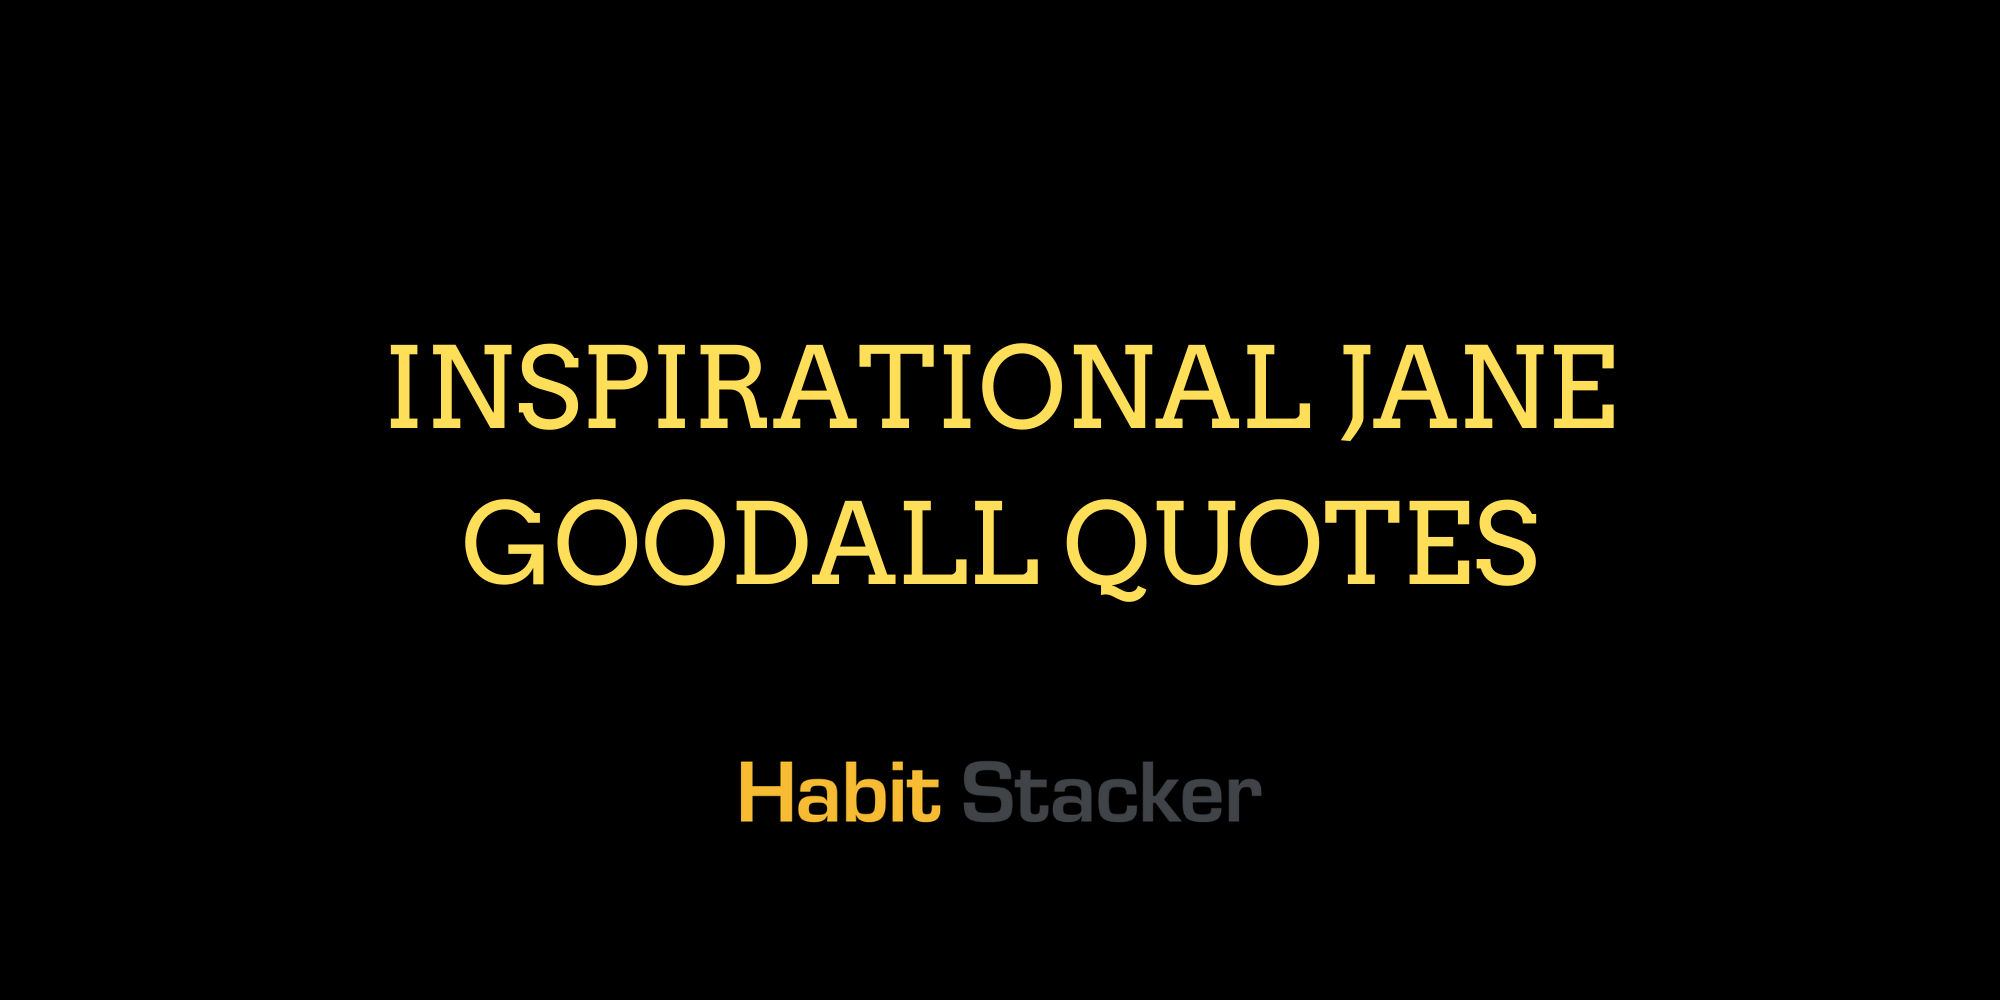 Inspirational Jane Goodall Quotes